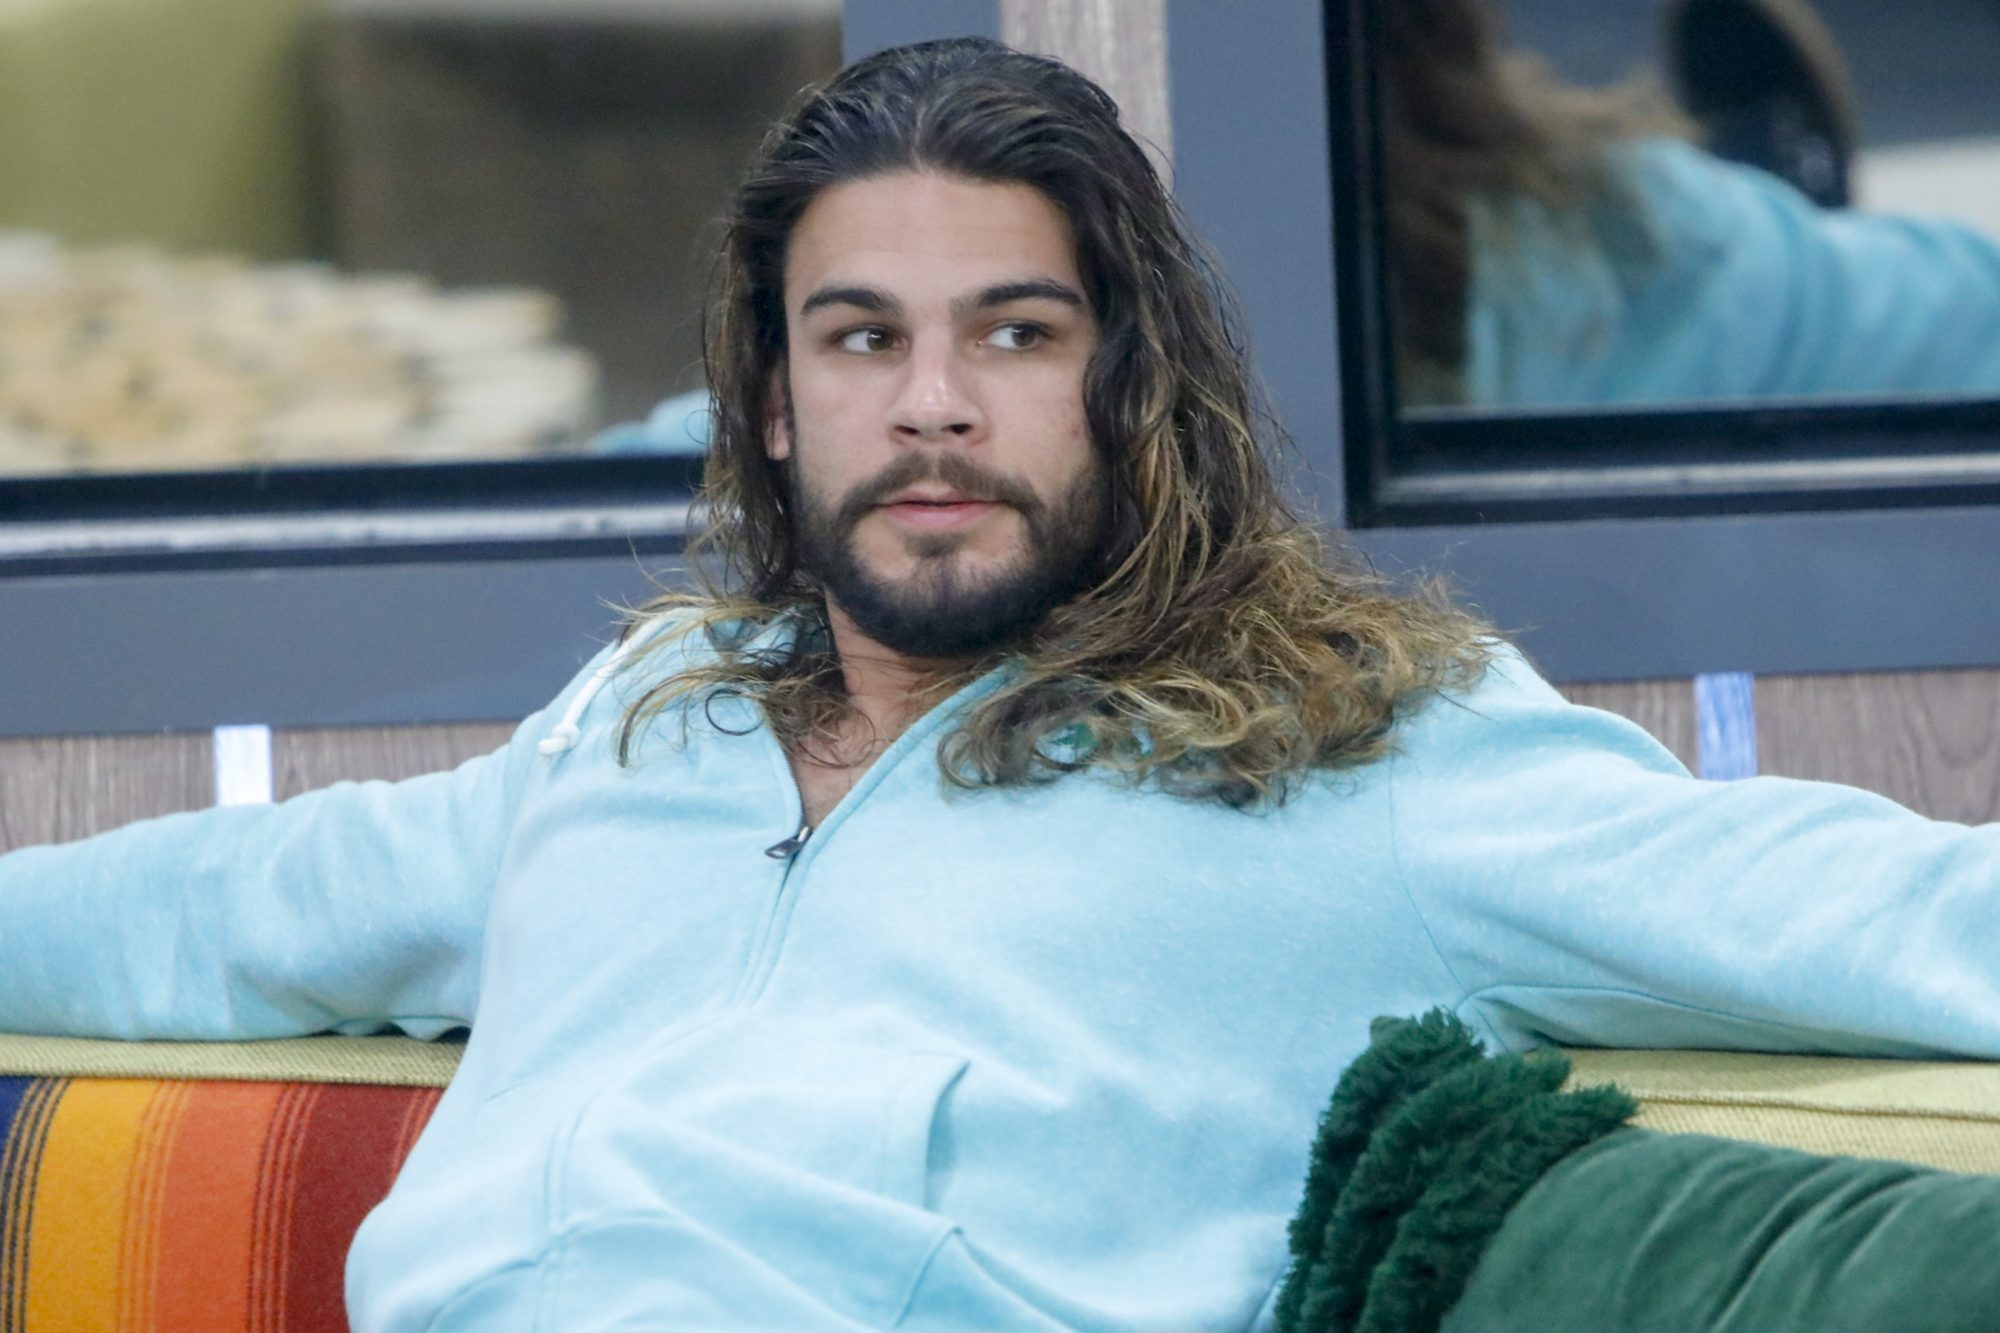 Jack Matthews on Big Brother. Following the two-night premiere, BIG BROTHER will be broadcast Sunday, June 30 (8:00-9:00 PM, ET/PT) and Tuesday, July 2 (8:00-9:00 PM, ET/PT). The first live eviction airs Wednesday, July 3. As of Wednesday, July 10, the show moves to its regular schedule of Wednesdays (9:00-10:00 PM, ET/PT), Thursdays, featuring the live evictions (9:00-10:00 PM, LIVE ET/Delayed PT) and Sundays (8:00-9:00 PM, ET/PT). Reserved Photo: Monty Brinton/CBS ©2018 CBS Broadcasting, Inc. All Rights Reserved